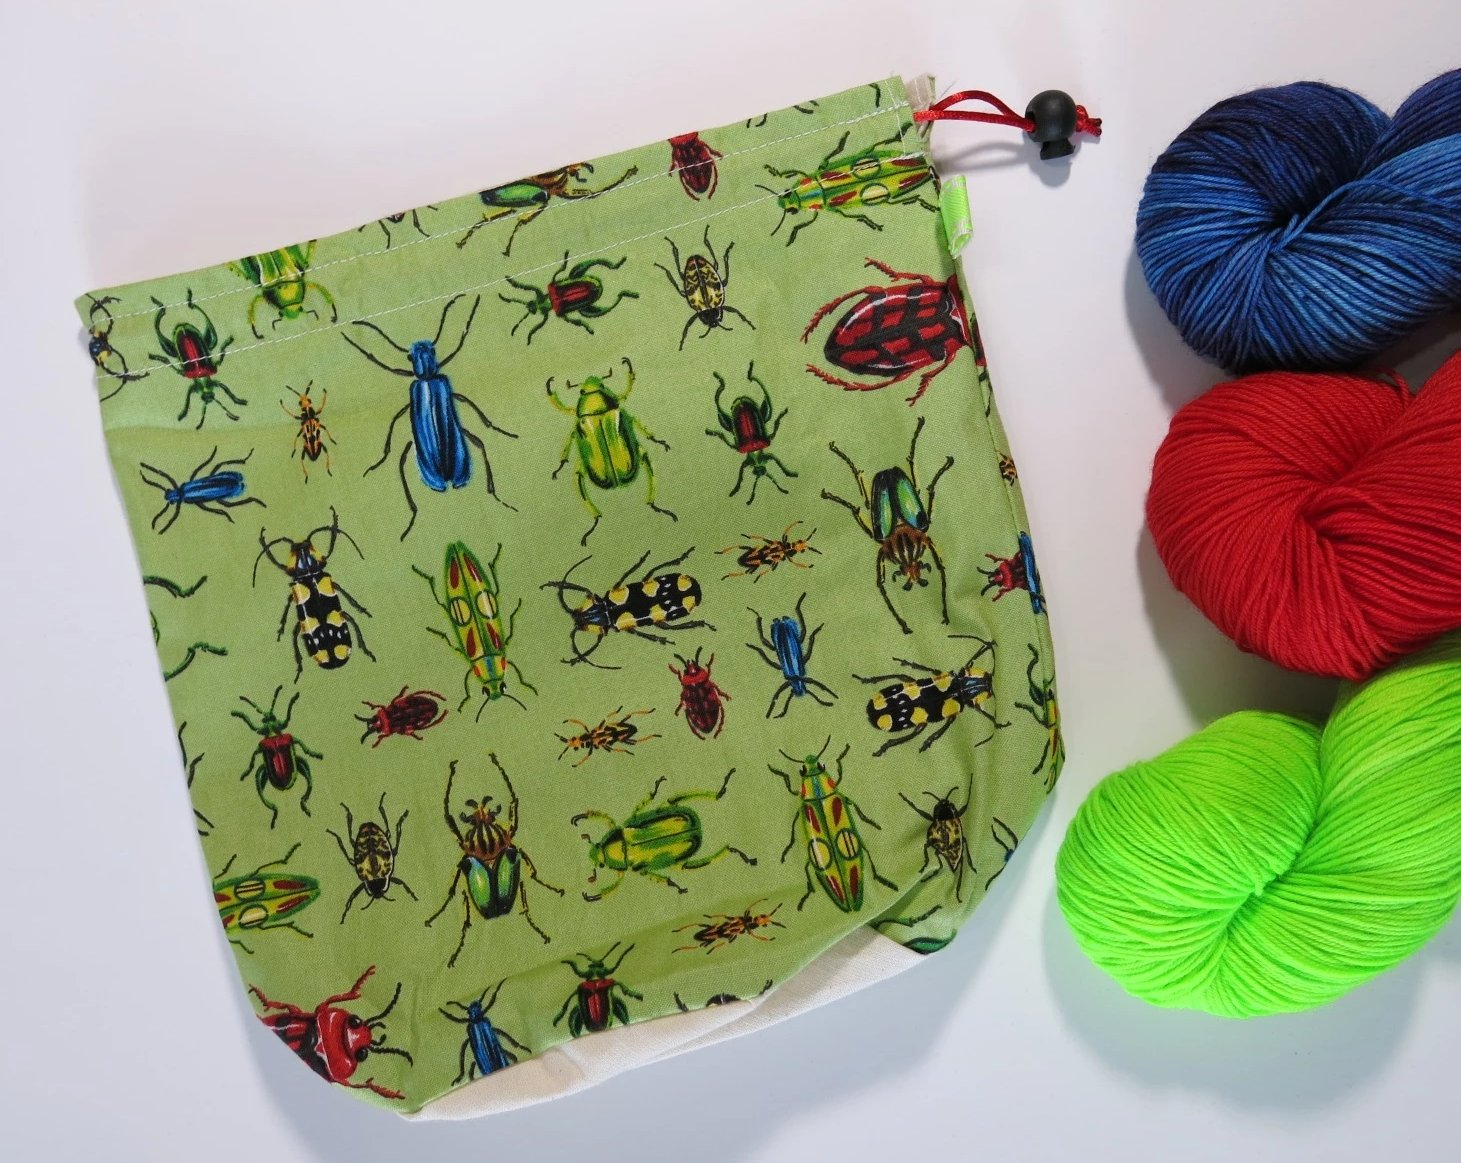 Bugs on Green Knitting Project Bag